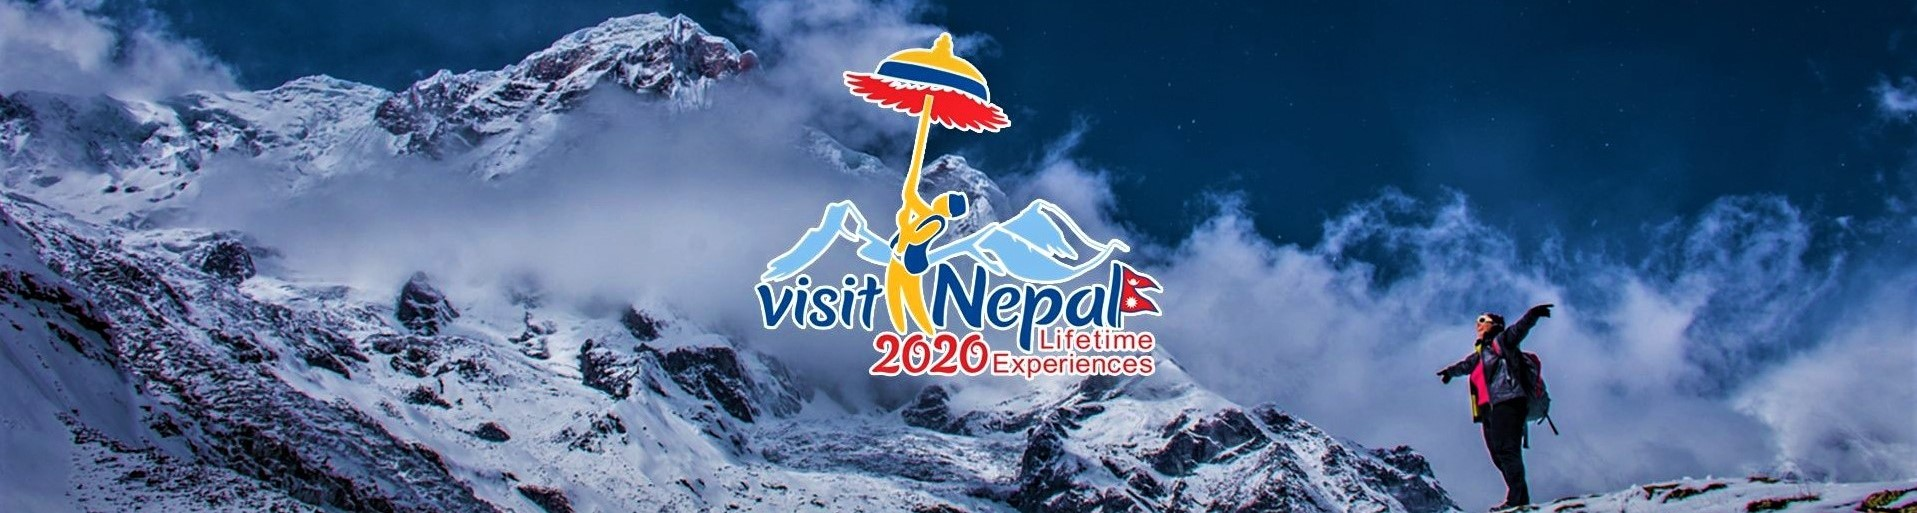 Visit Nepal 2020: Lifetime Experiences  ©Nepal Tourism Board